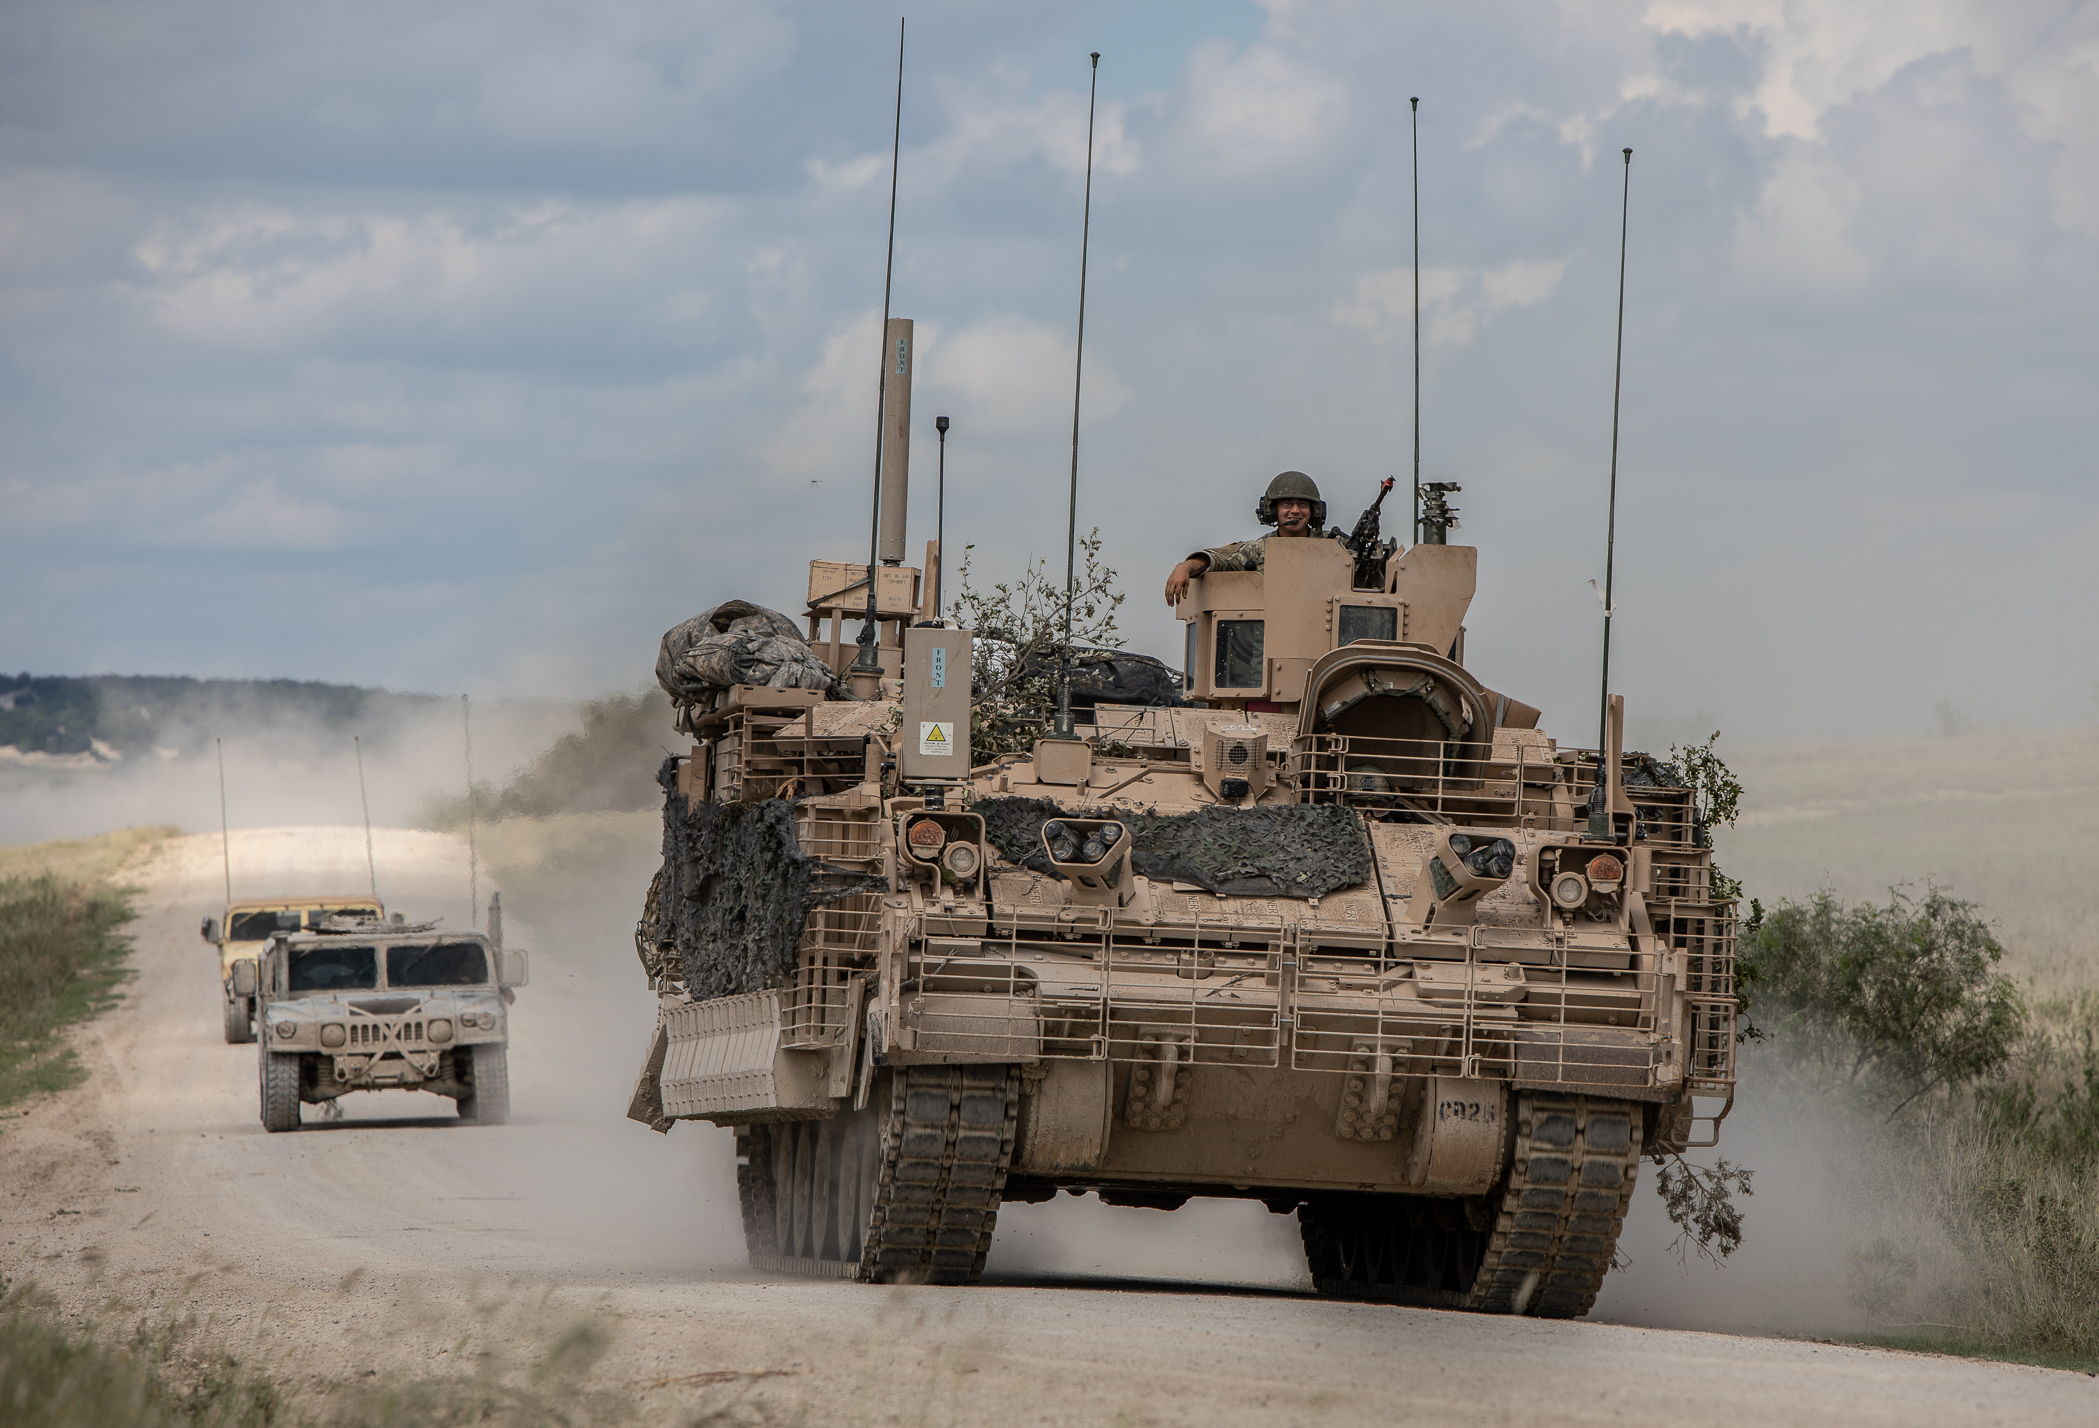 """Soldiers from 9th U.S. Cavalry Regiment """"Dark Horse,"""" 2nd Armored Brigade Combat Team, 1st Cavalry Division, are escorted by observer controllers from the Army Operational Test Command after completing field testing of the Armored Multi-Purpose Vehicle. (Maj. Carson Petry/Army)"""